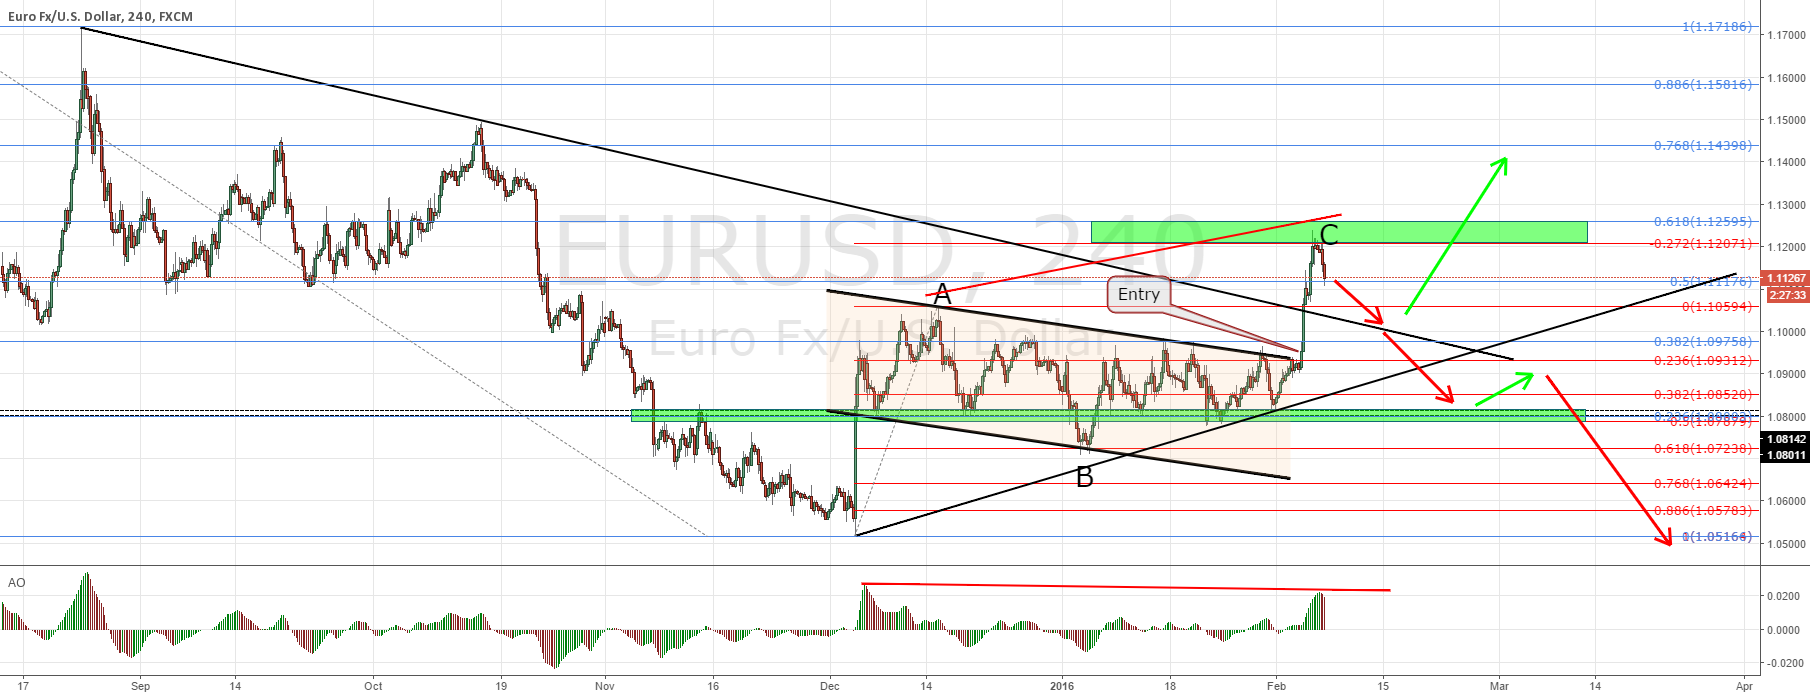 EURUSD hit target! What's next?